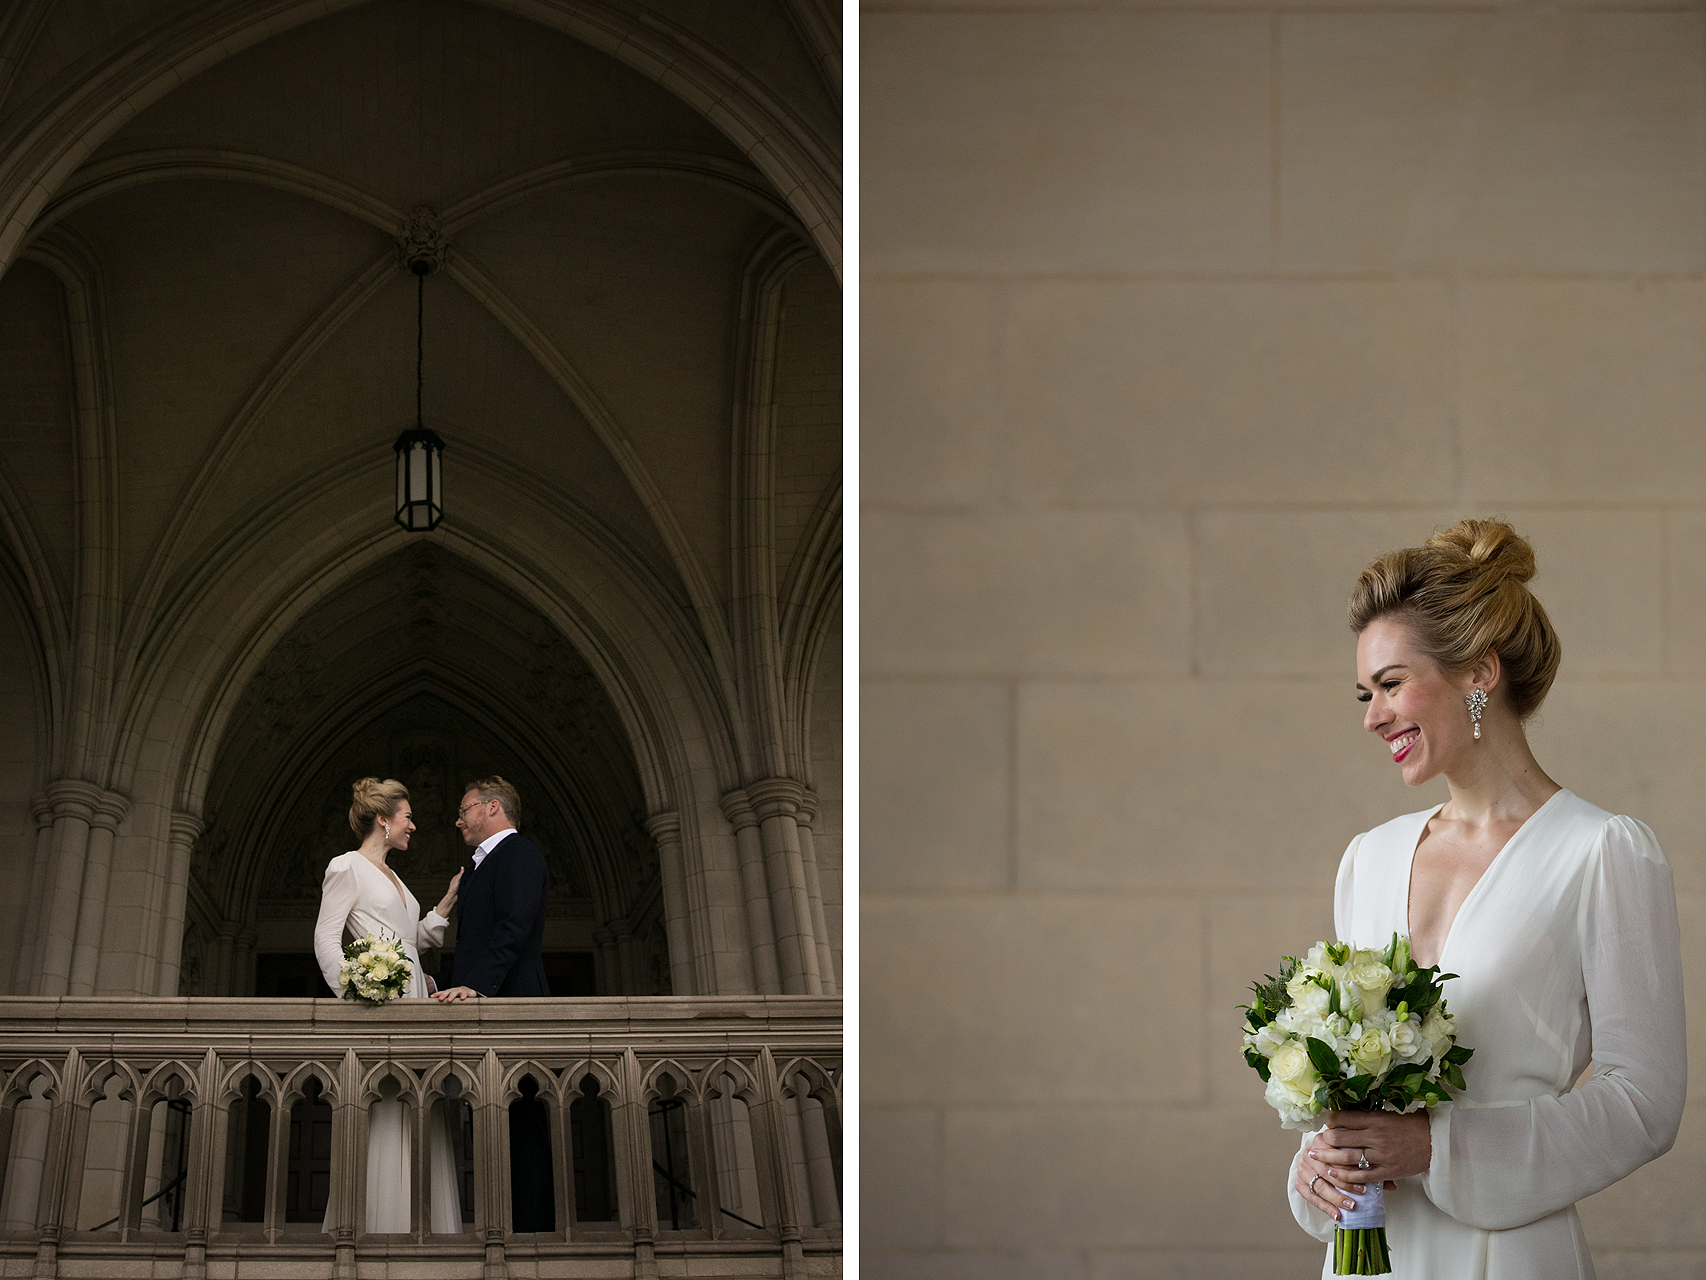 Bride and groom posing under the stone arches during wedding at the National Cathedral in Washington DC